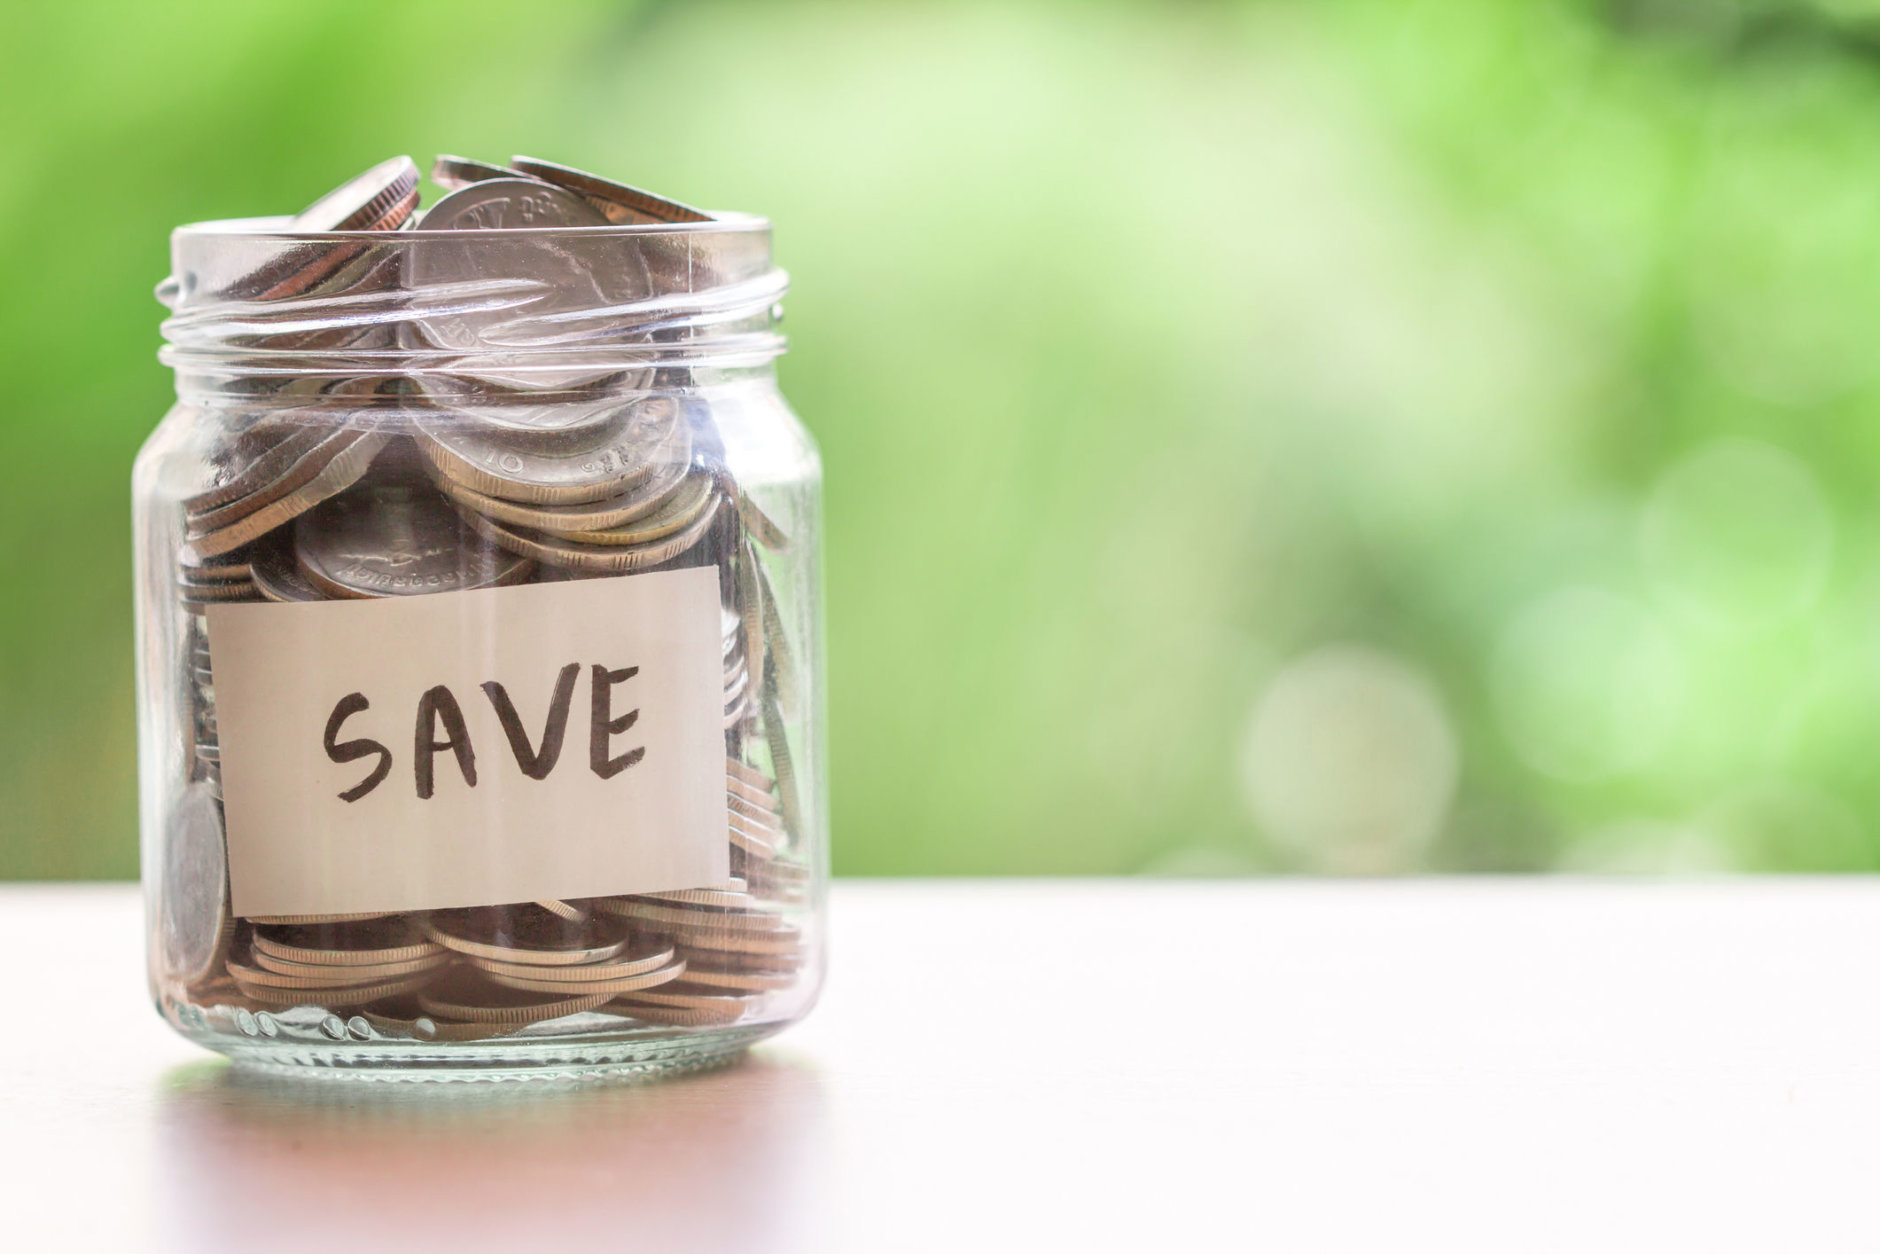 Coins in glass jar for money saving financial concept